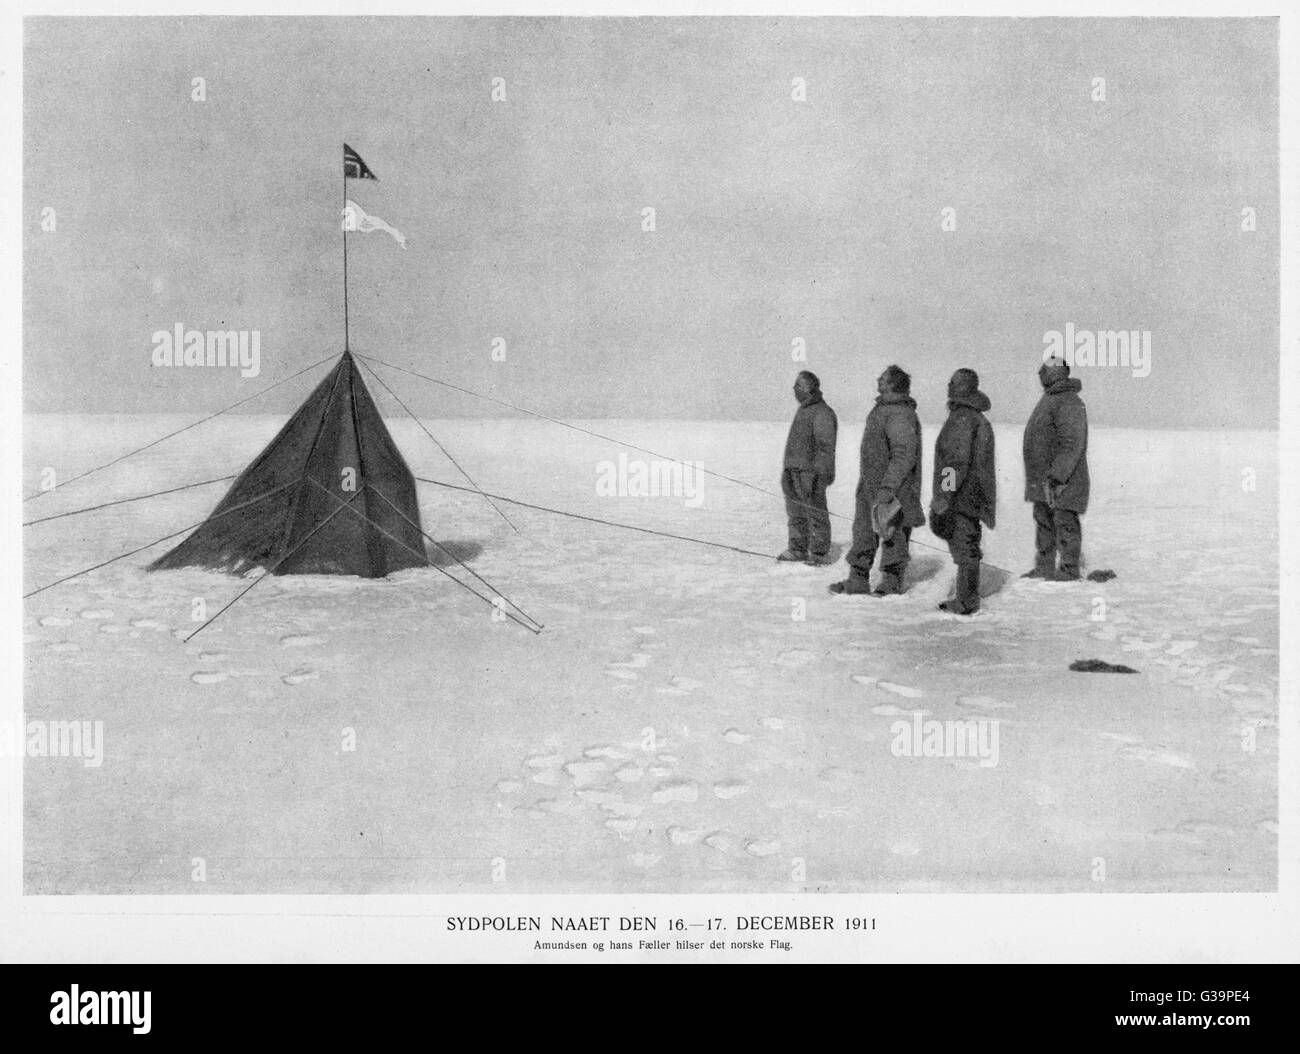 Roald Amundsen, the first to  reach the South Pole, did so  on 14 December 1911 and  returned home safely.  Raising - Stock Image